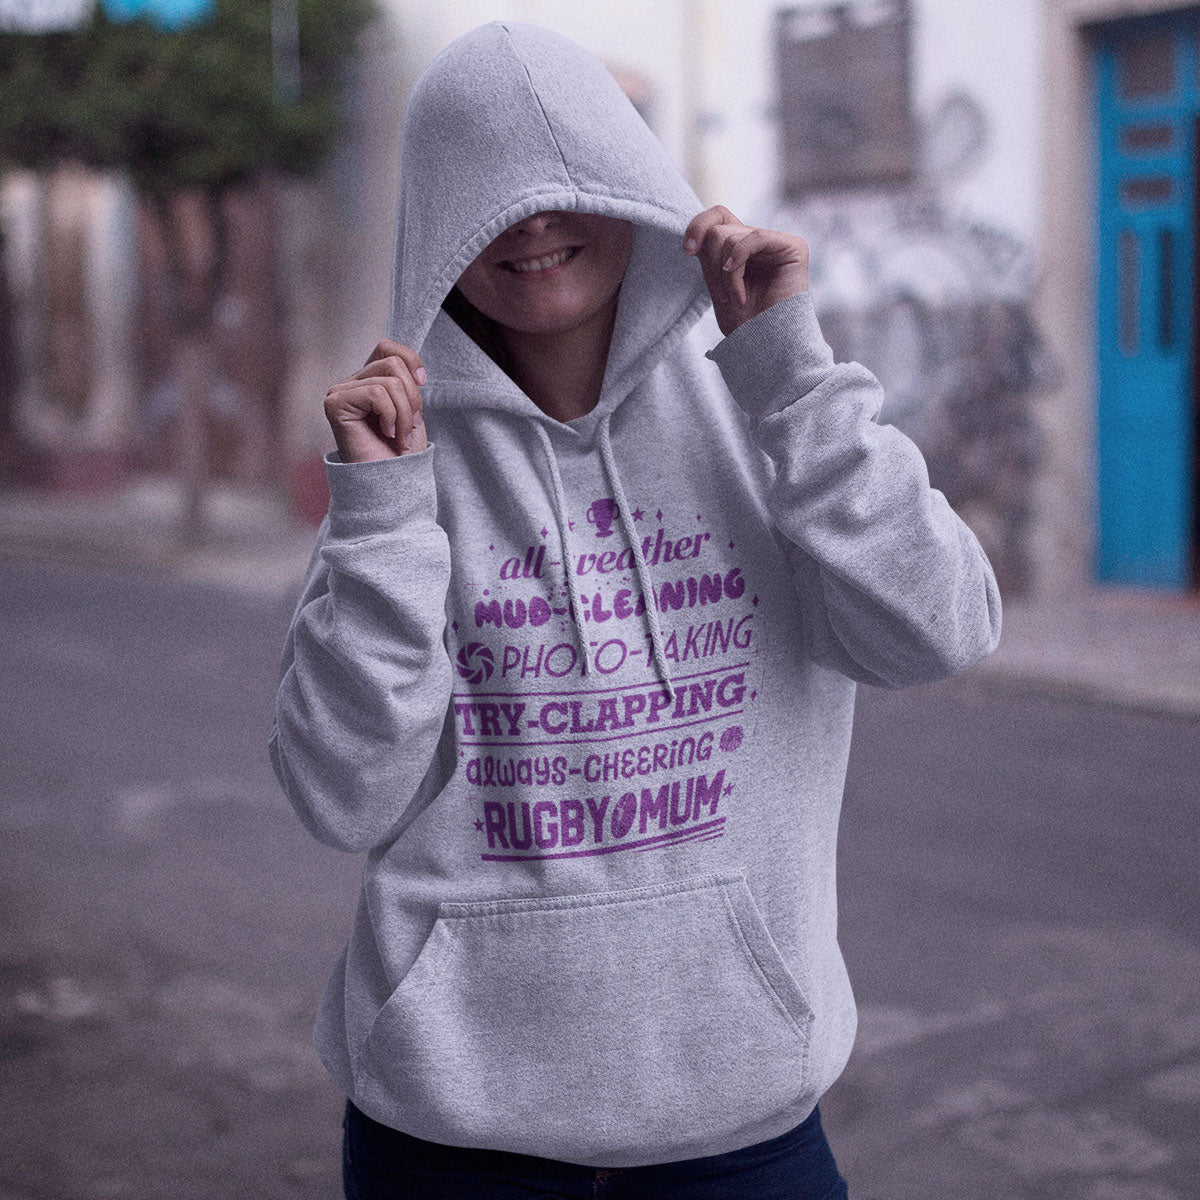 Women's All Weather Rugby Mum Hoody - First XV rugbystuff.com